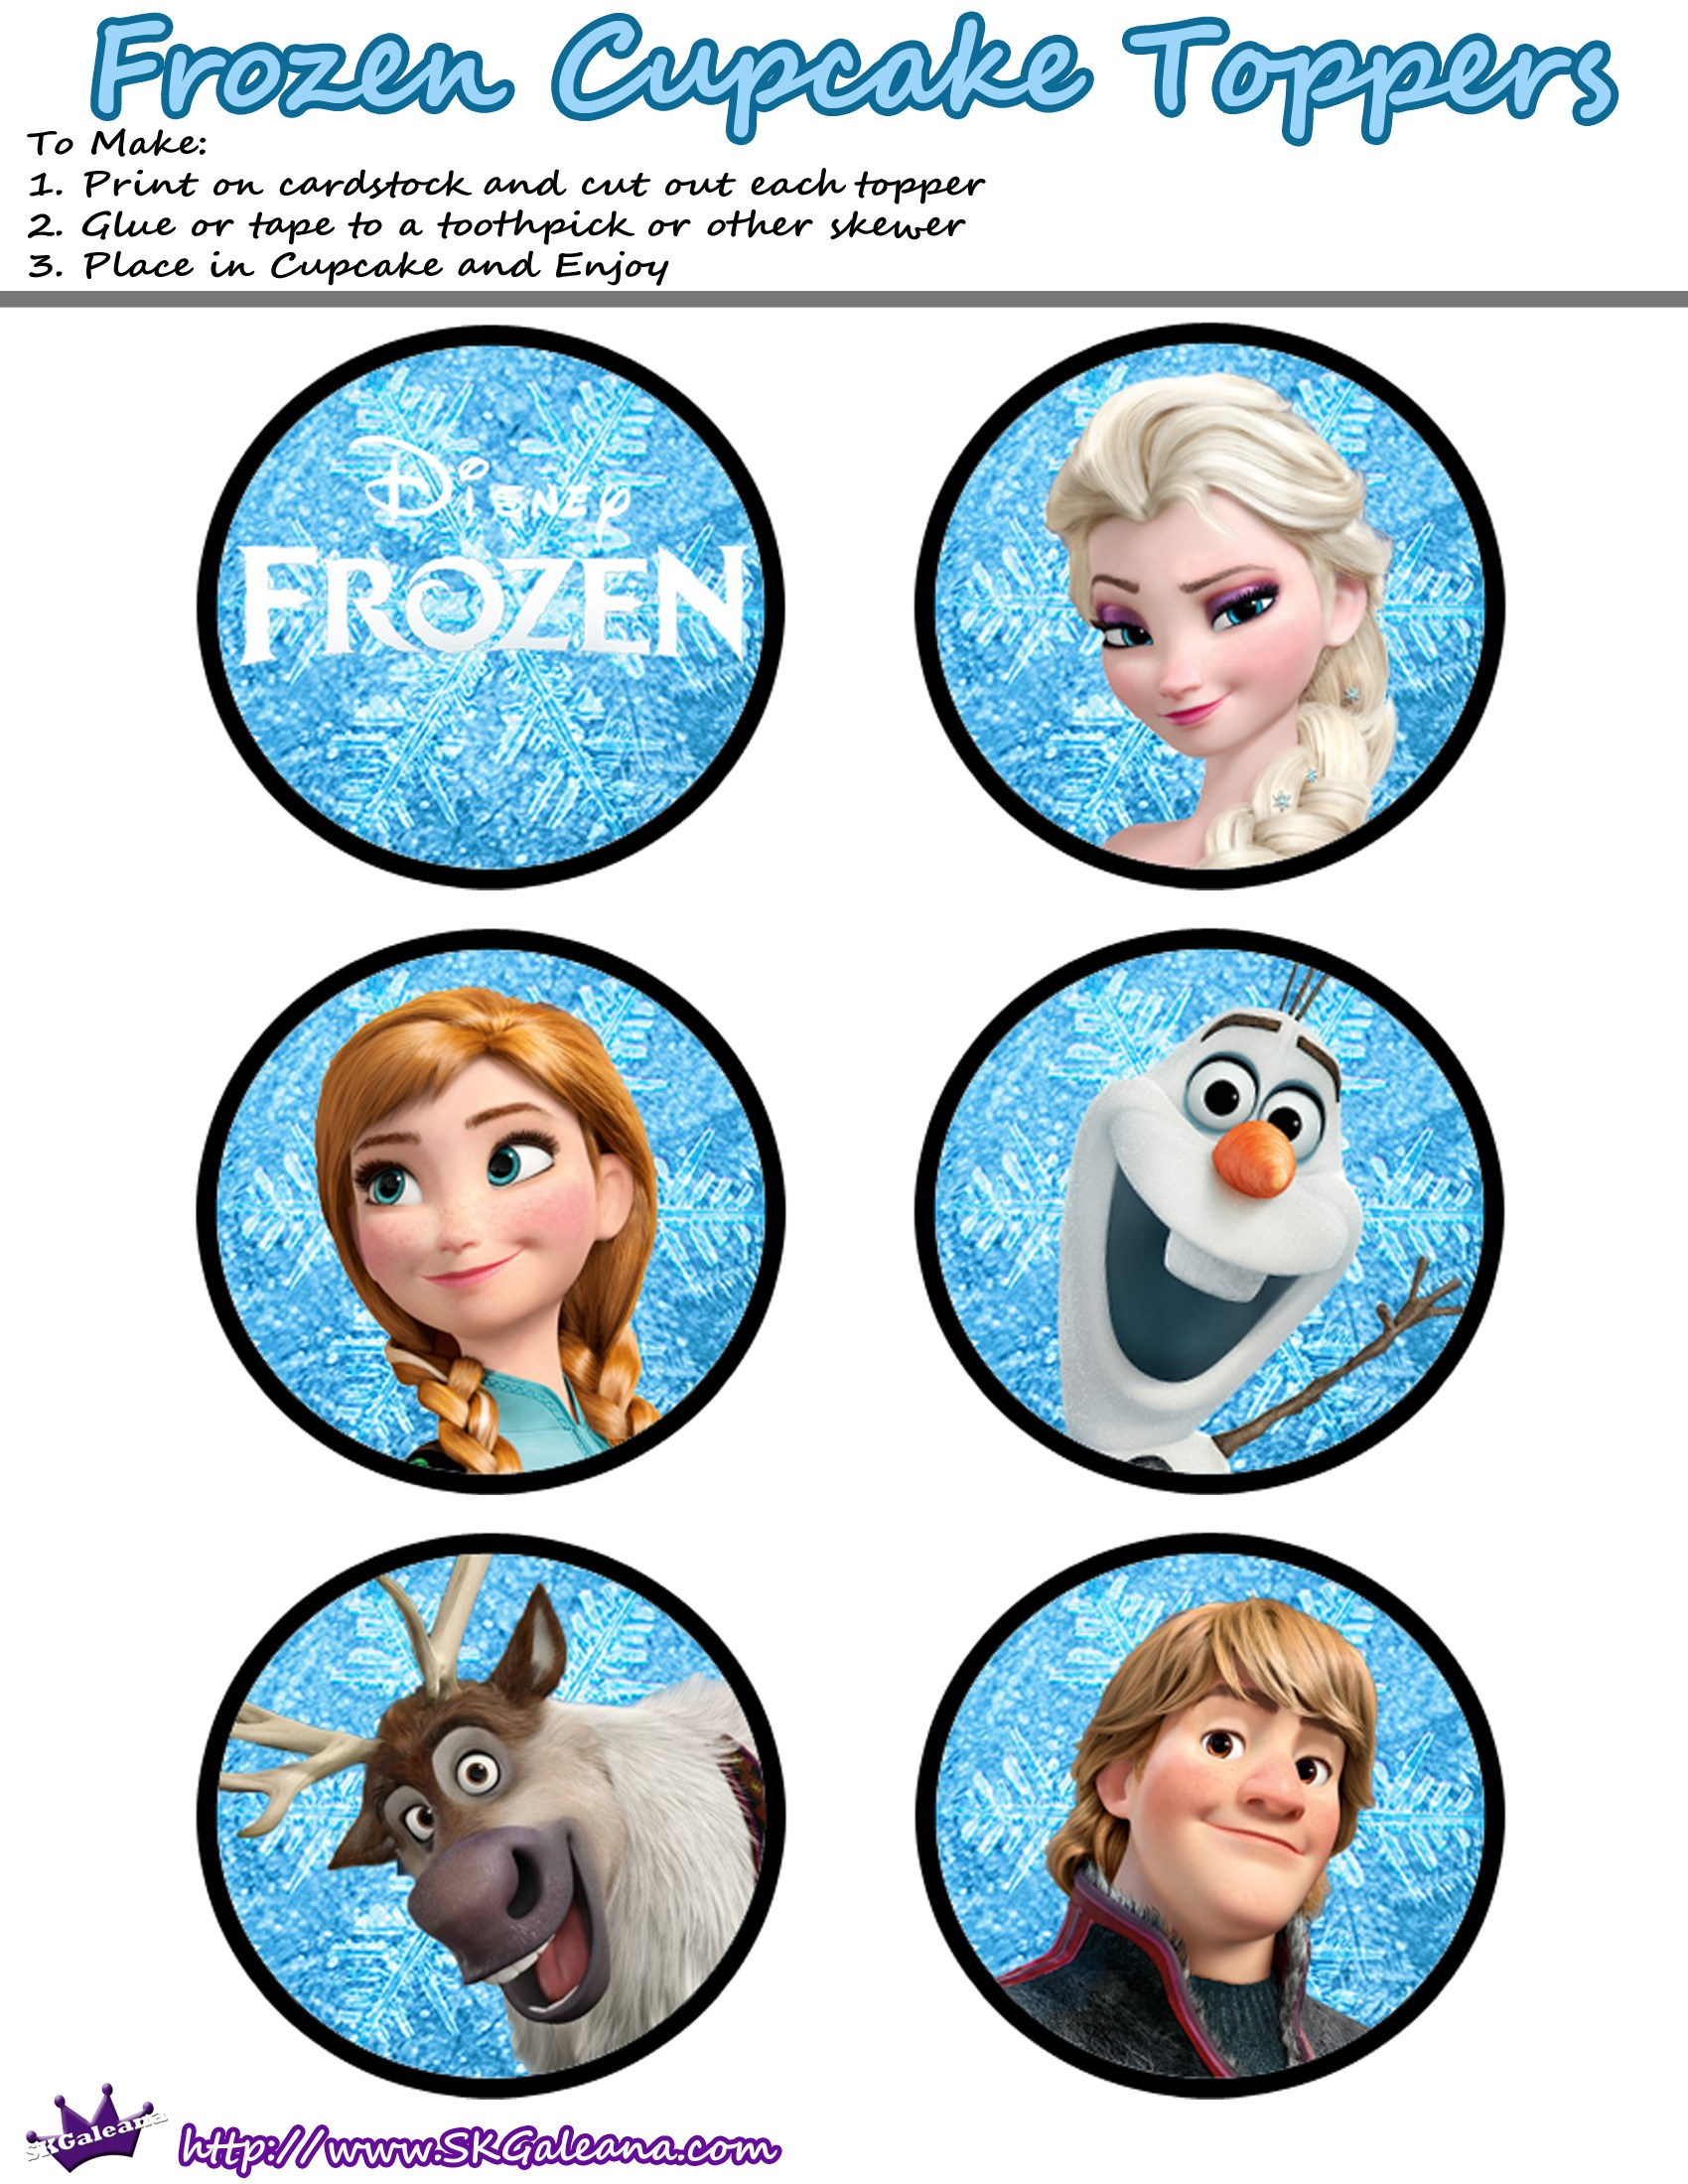 6 Images of Disney Frozen Printable Cupcake Toppers